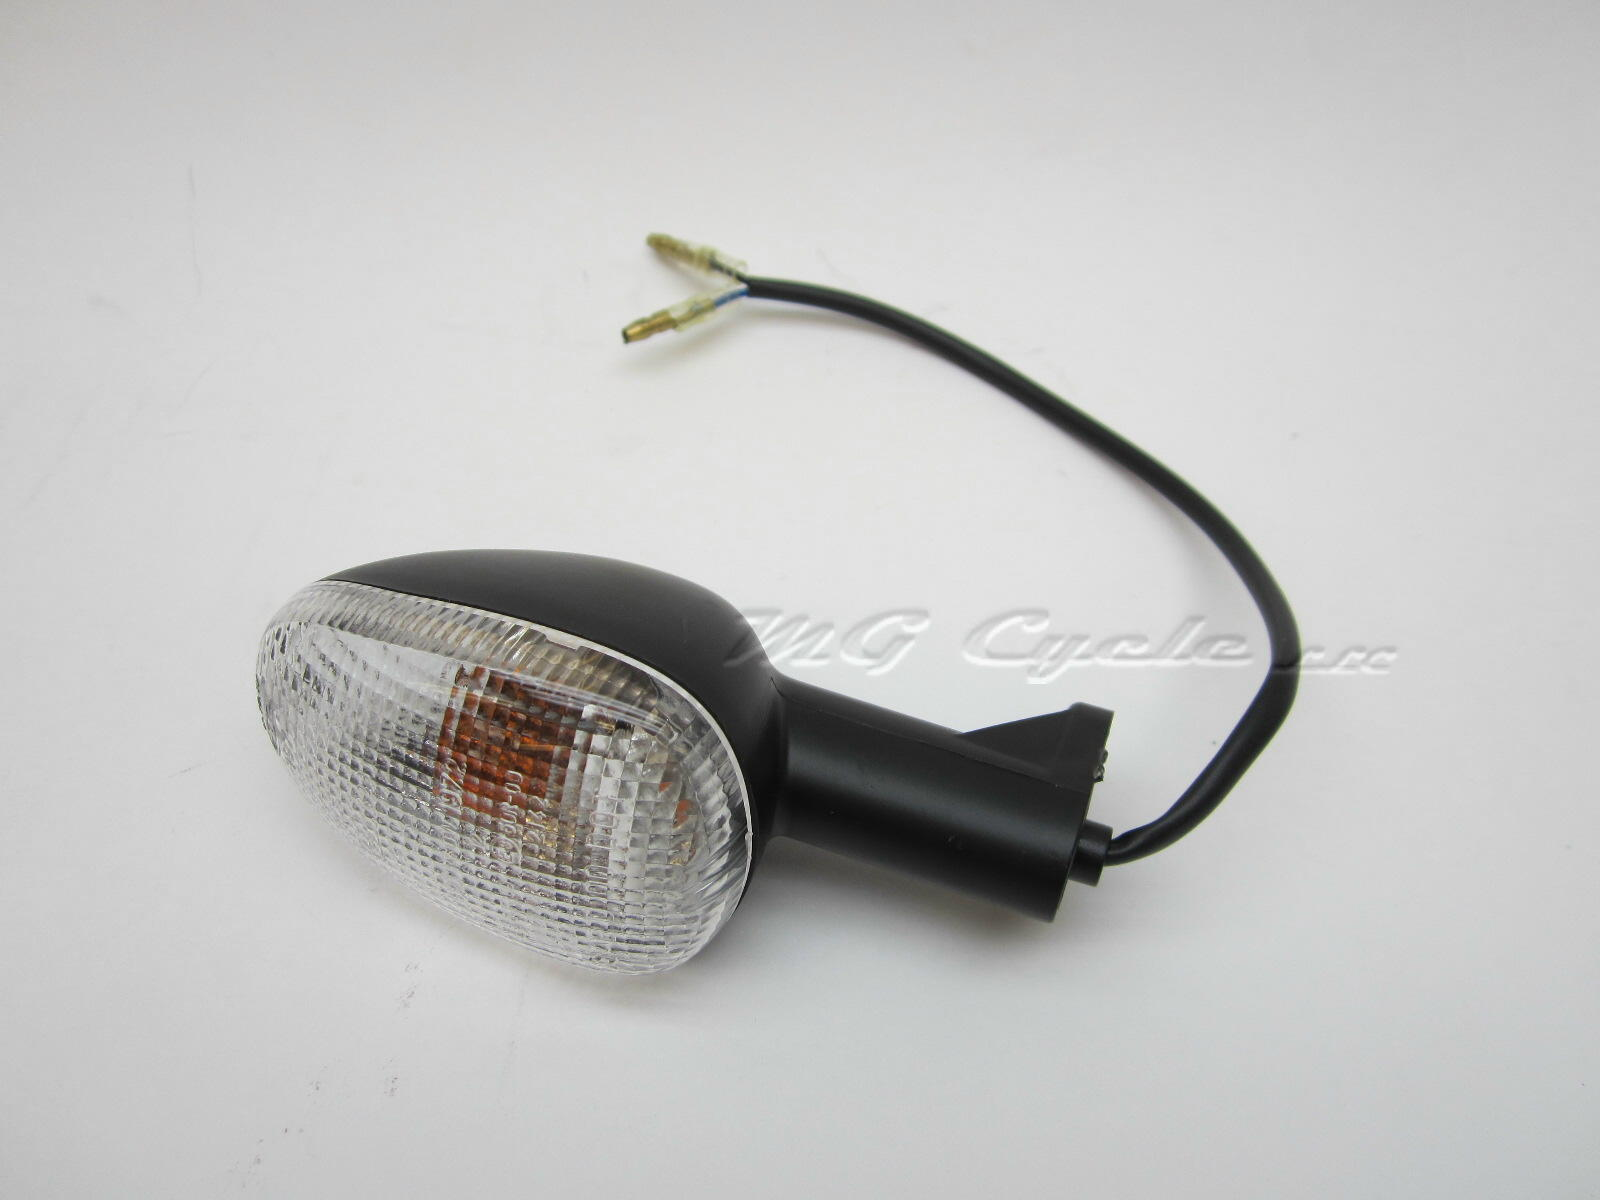 Turn signal complete V11 clear lens 03-05 front right GU01750680